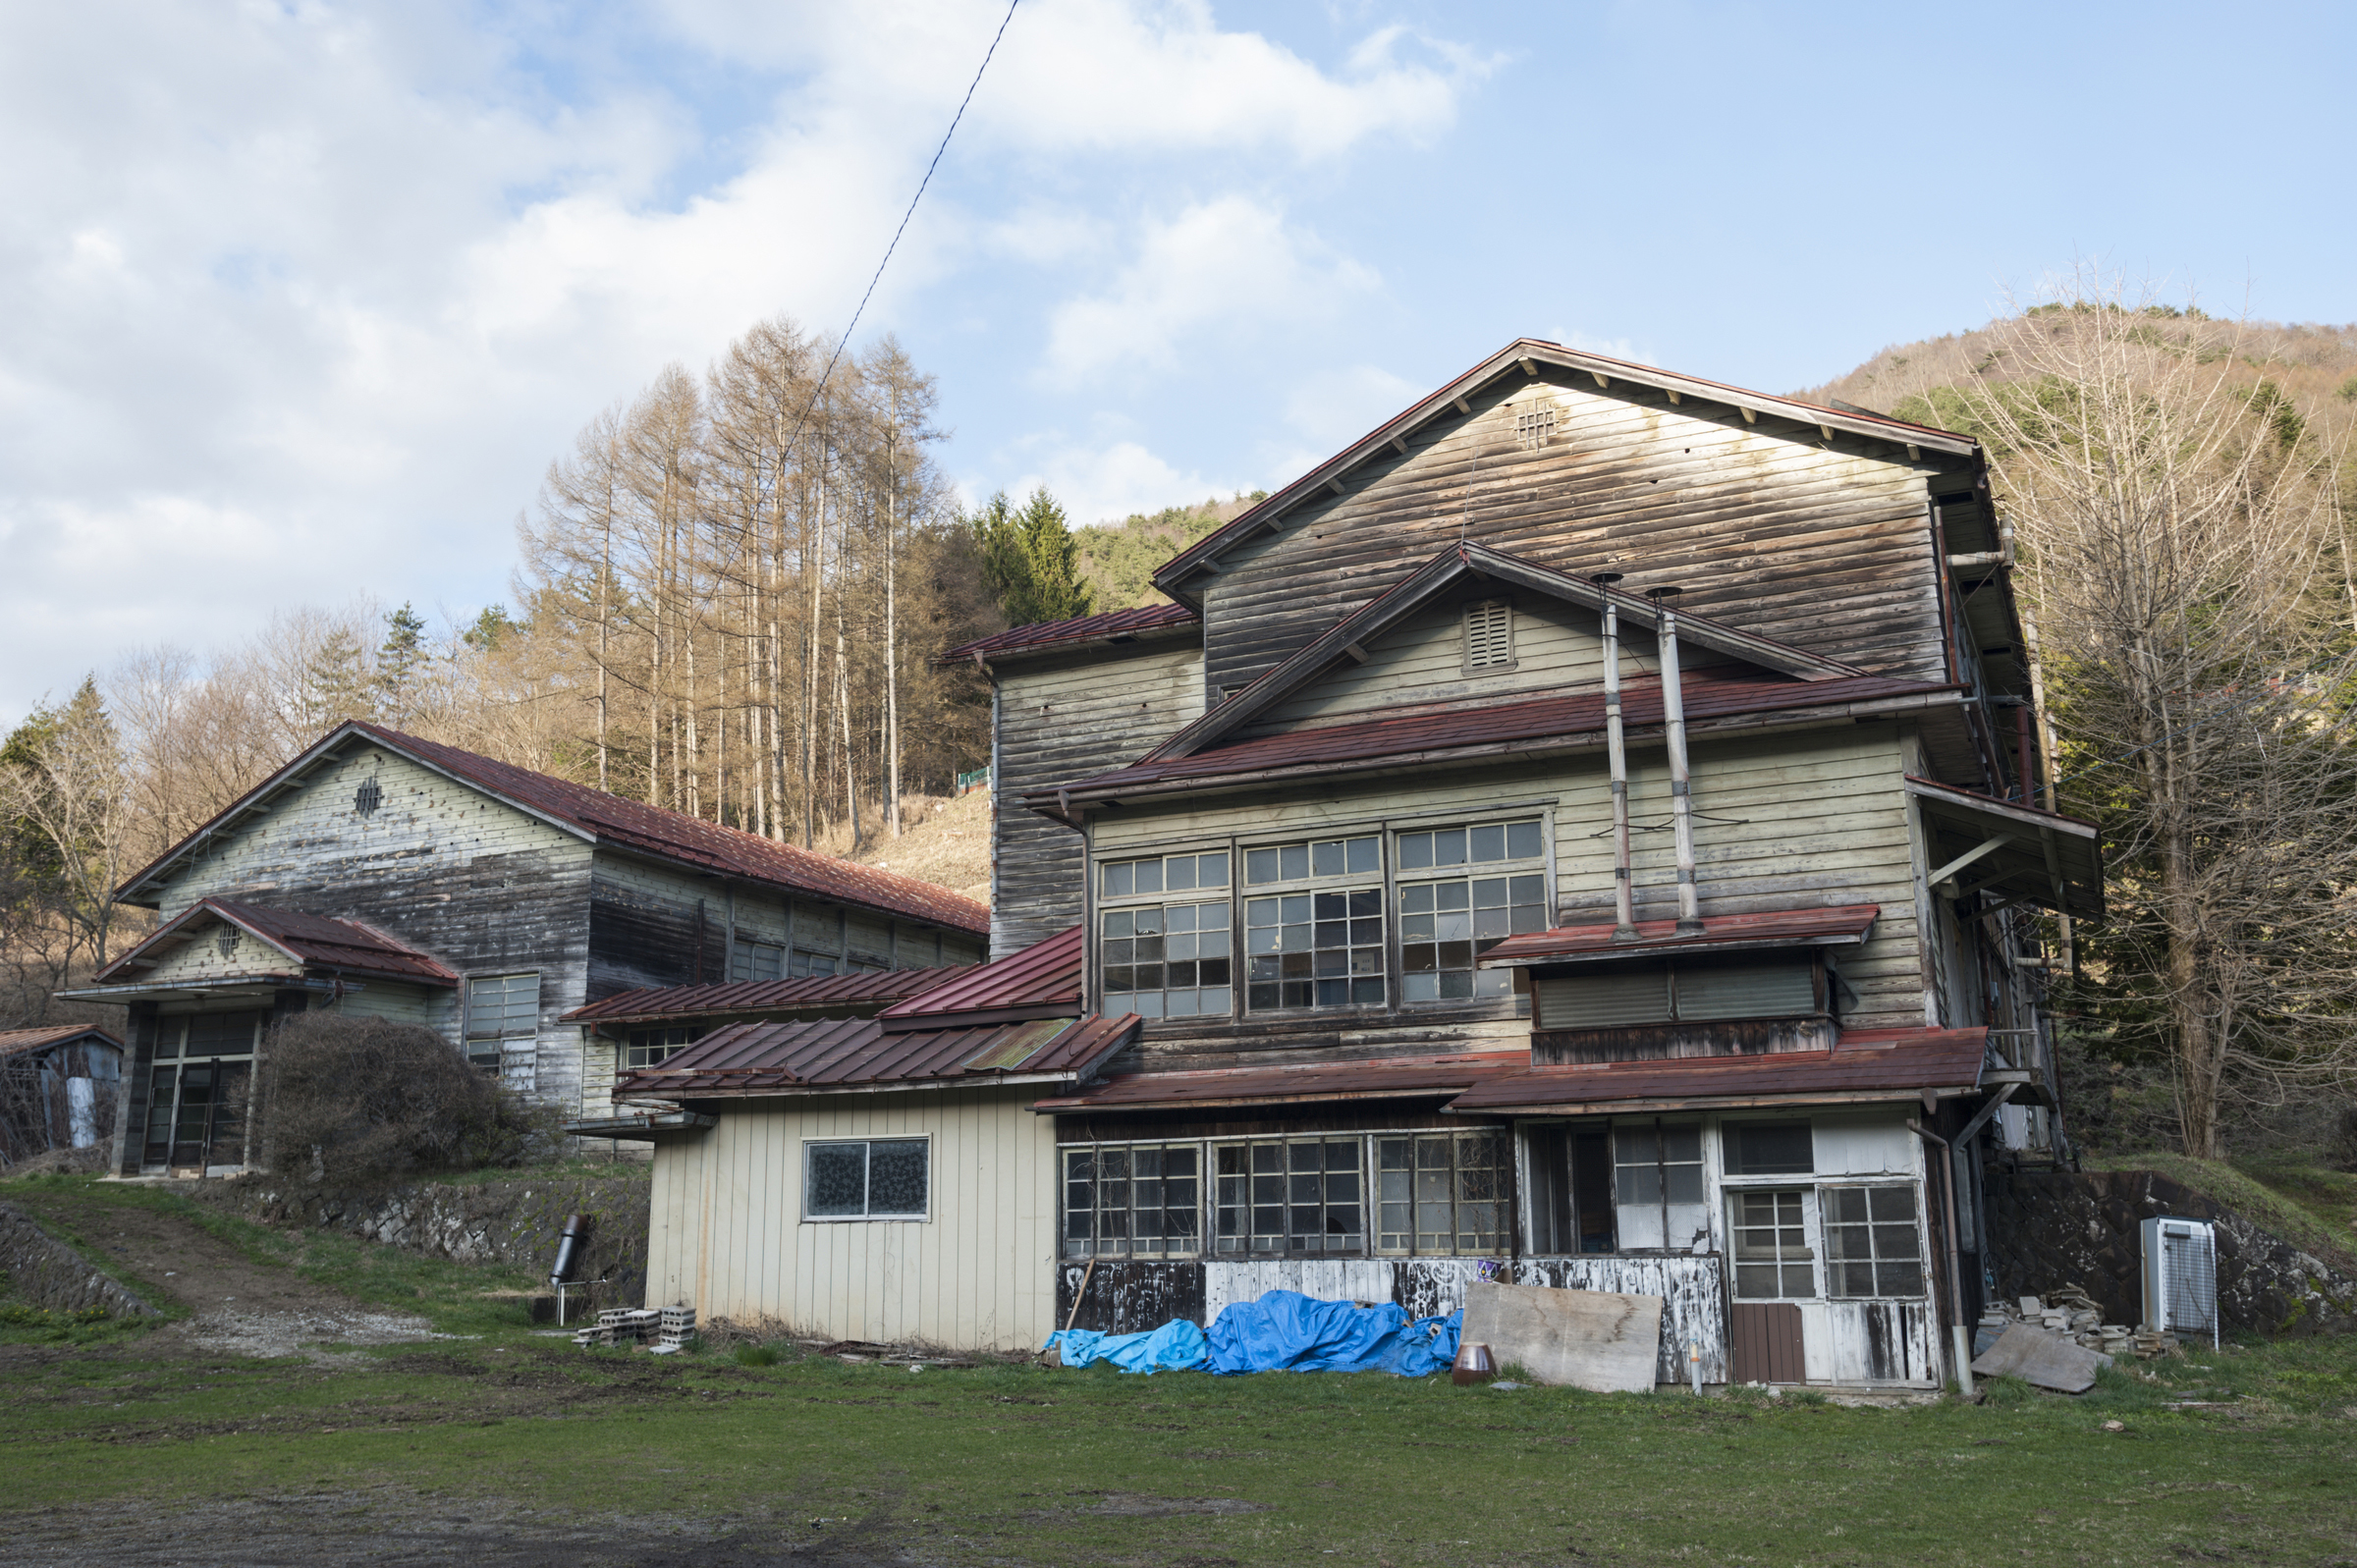 The exterior of an abandoned elementary school in the district of Suwa, Nagano Prefecture.